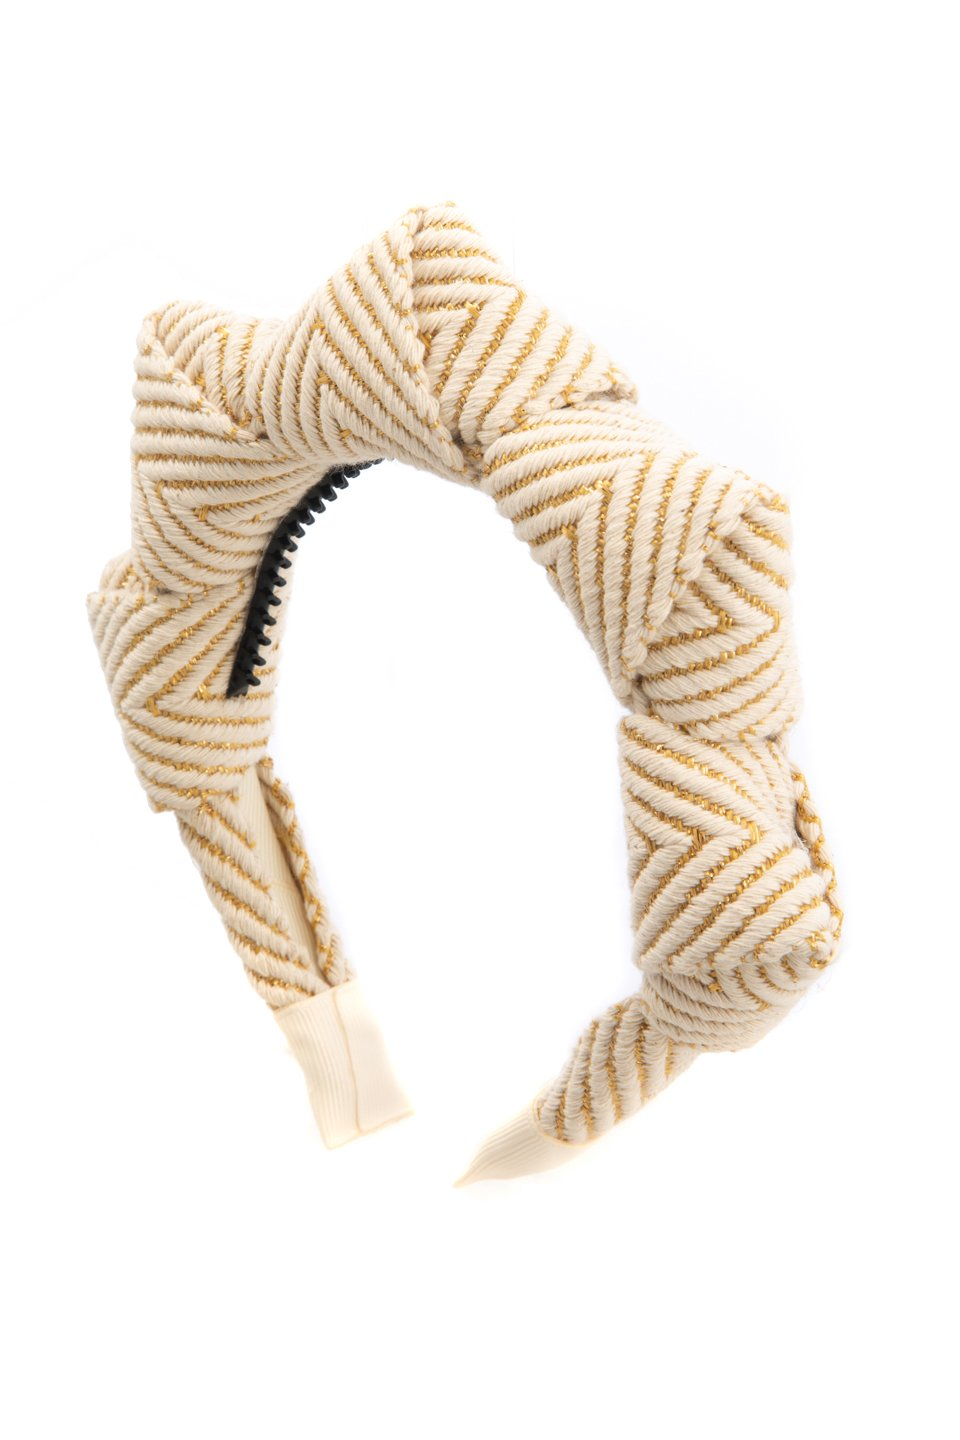 Mountain Queen Headband - Gold/Ivory stripe - PROJECT 6, modest fashion